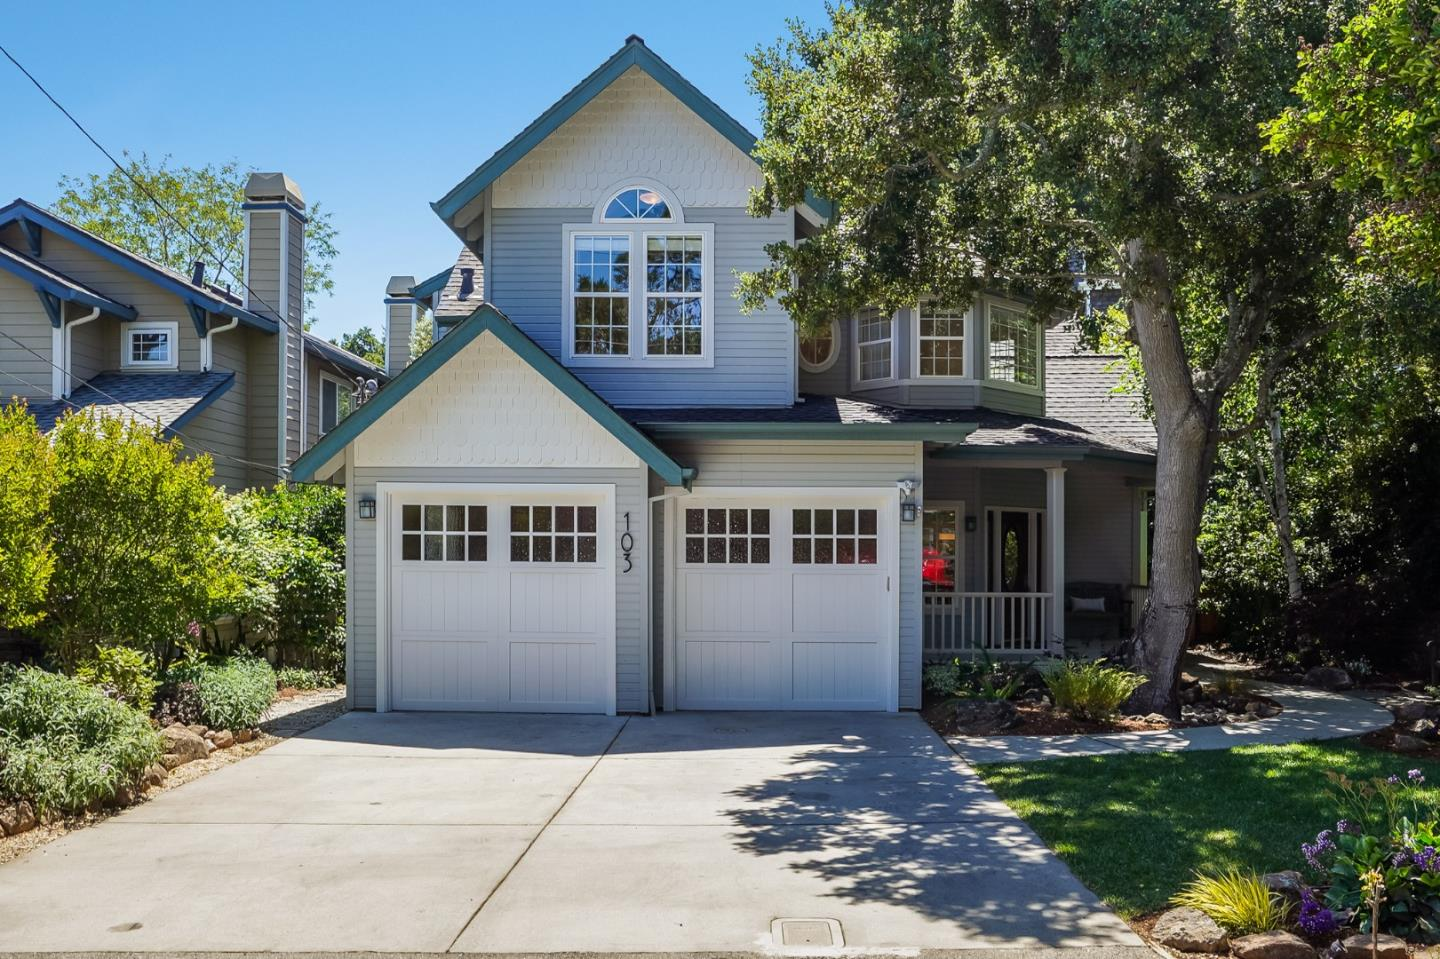 103 Dale AVE, SAN CARLOS, California 94070, 4 Bedrooms Bedrooms, ,3 BathroomsBathrooms,Single Family,For Sale,103 Dale AVE,ML81843726